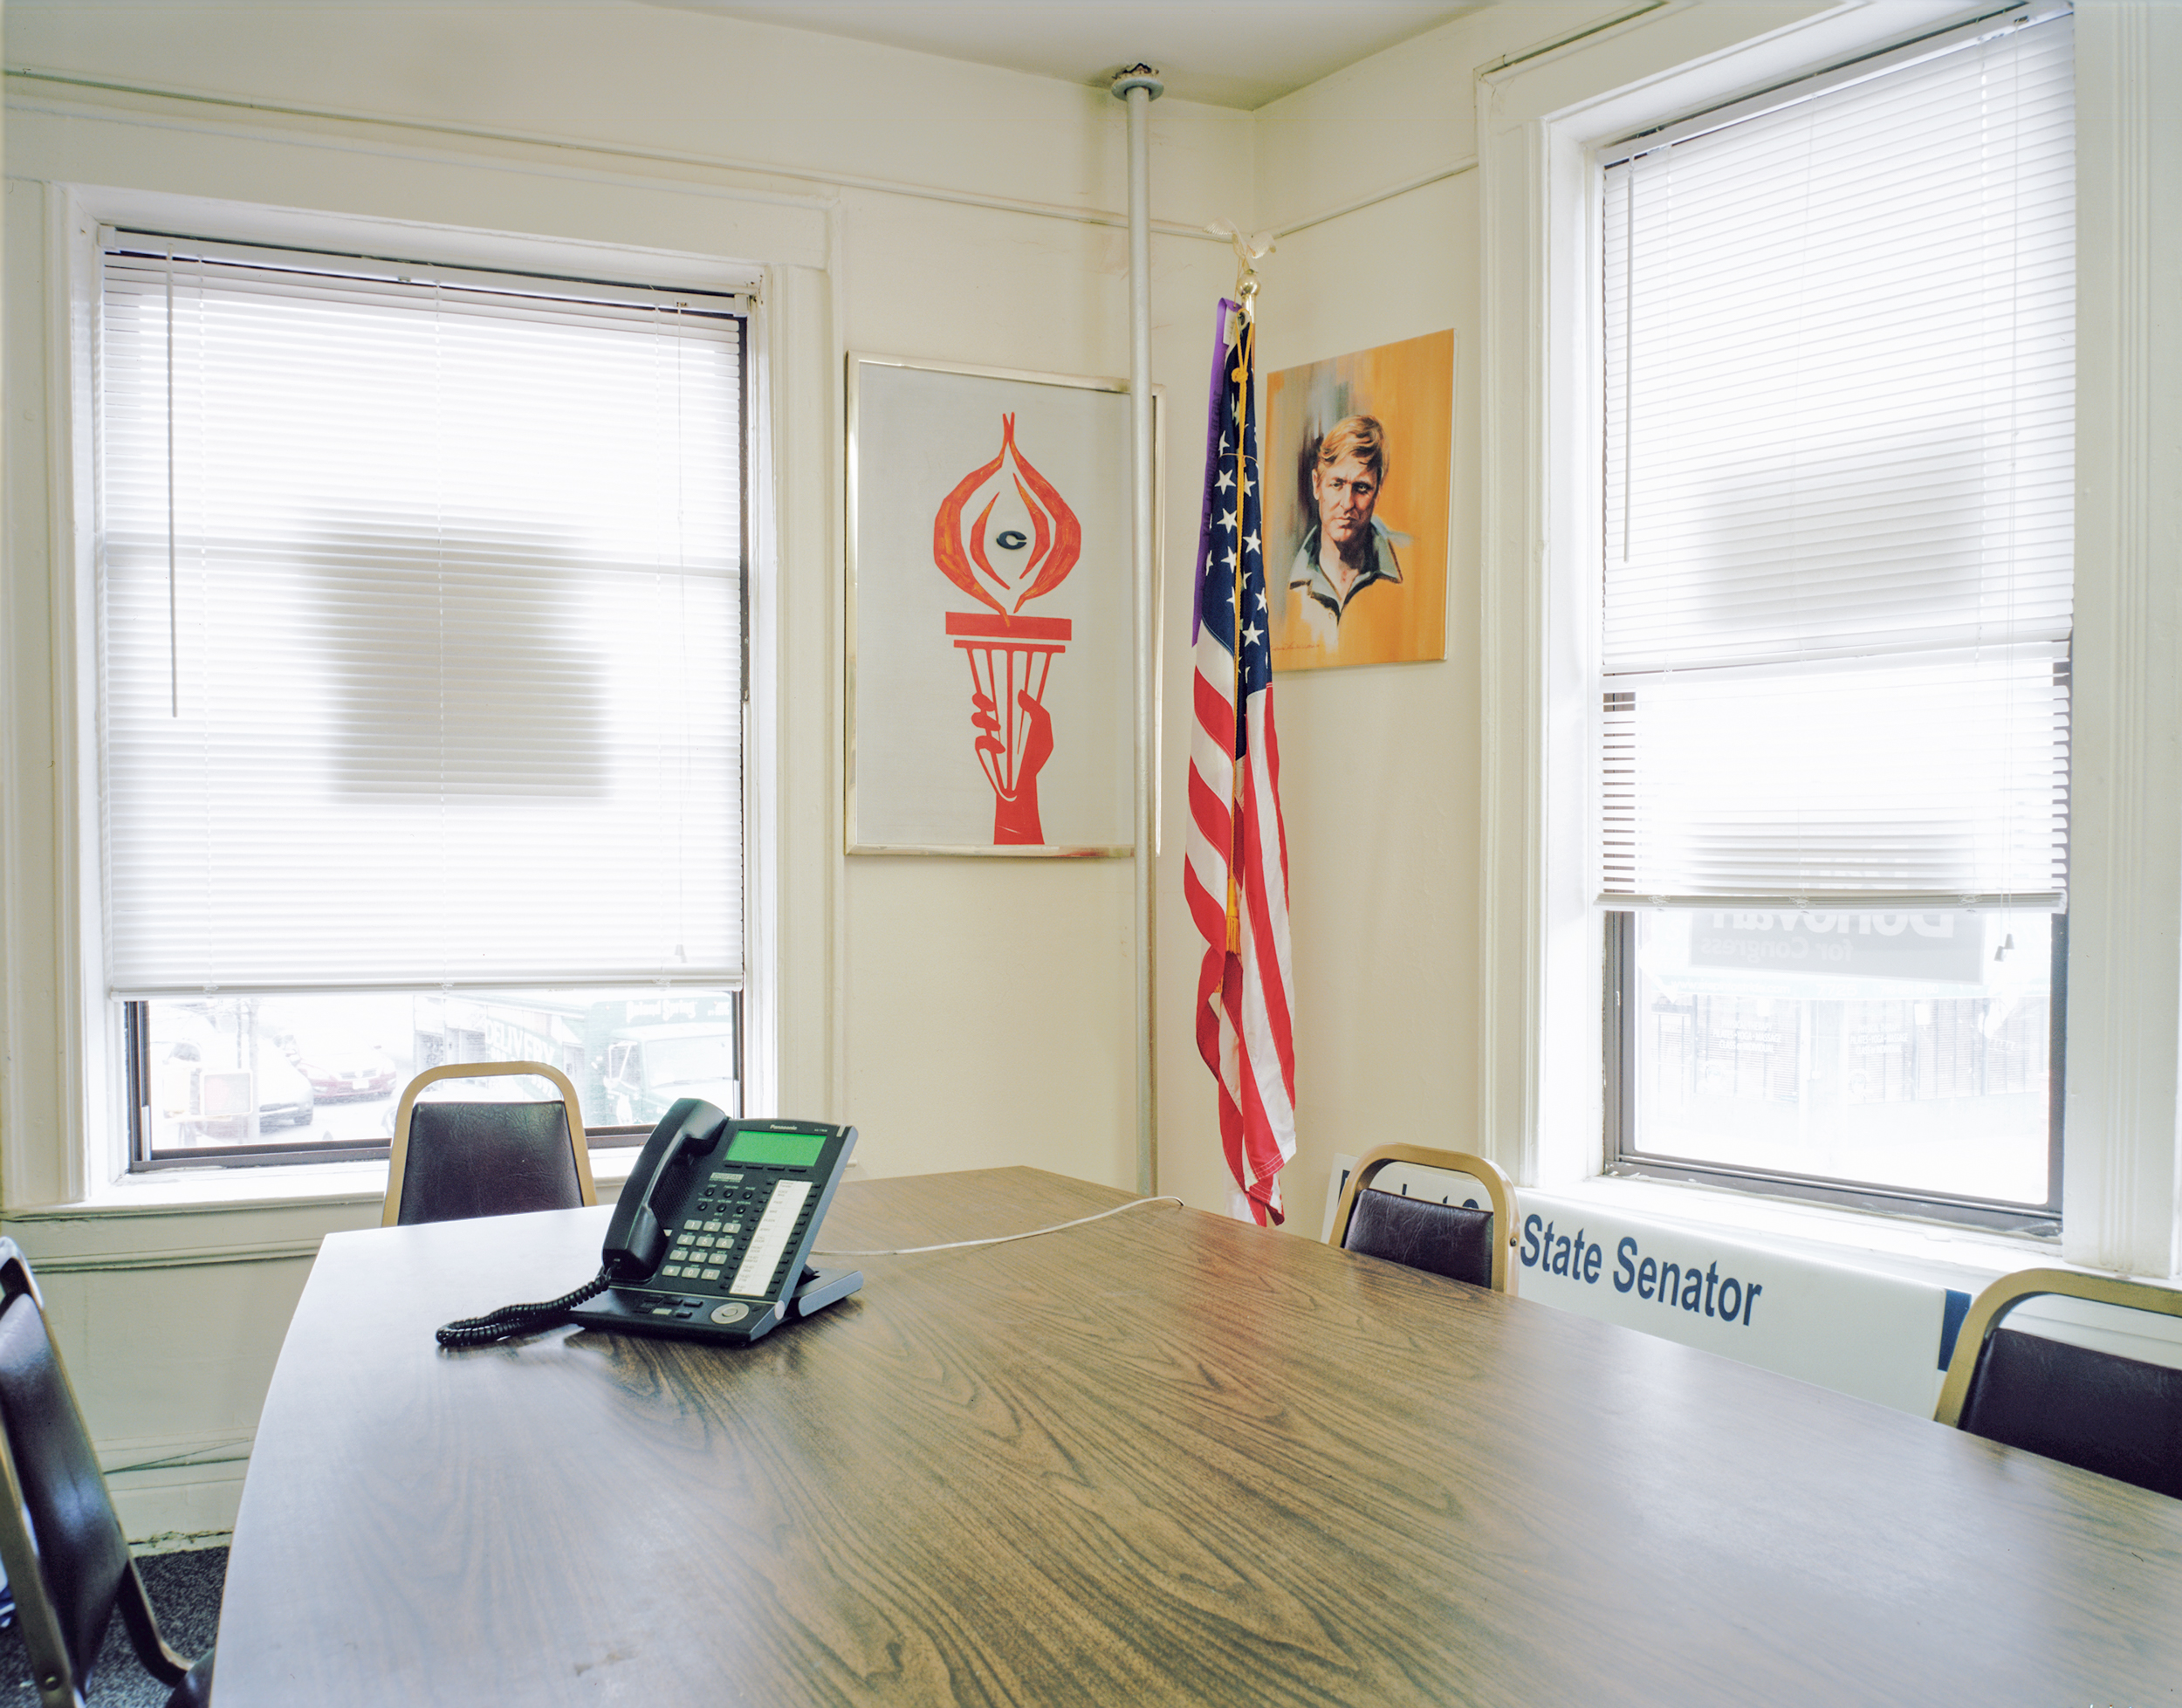 The meeting room of the Conservative Party of New York State. Visible through the windows are storefronts of the rapidly changing Bay Ridge neighborhood in which it is located.